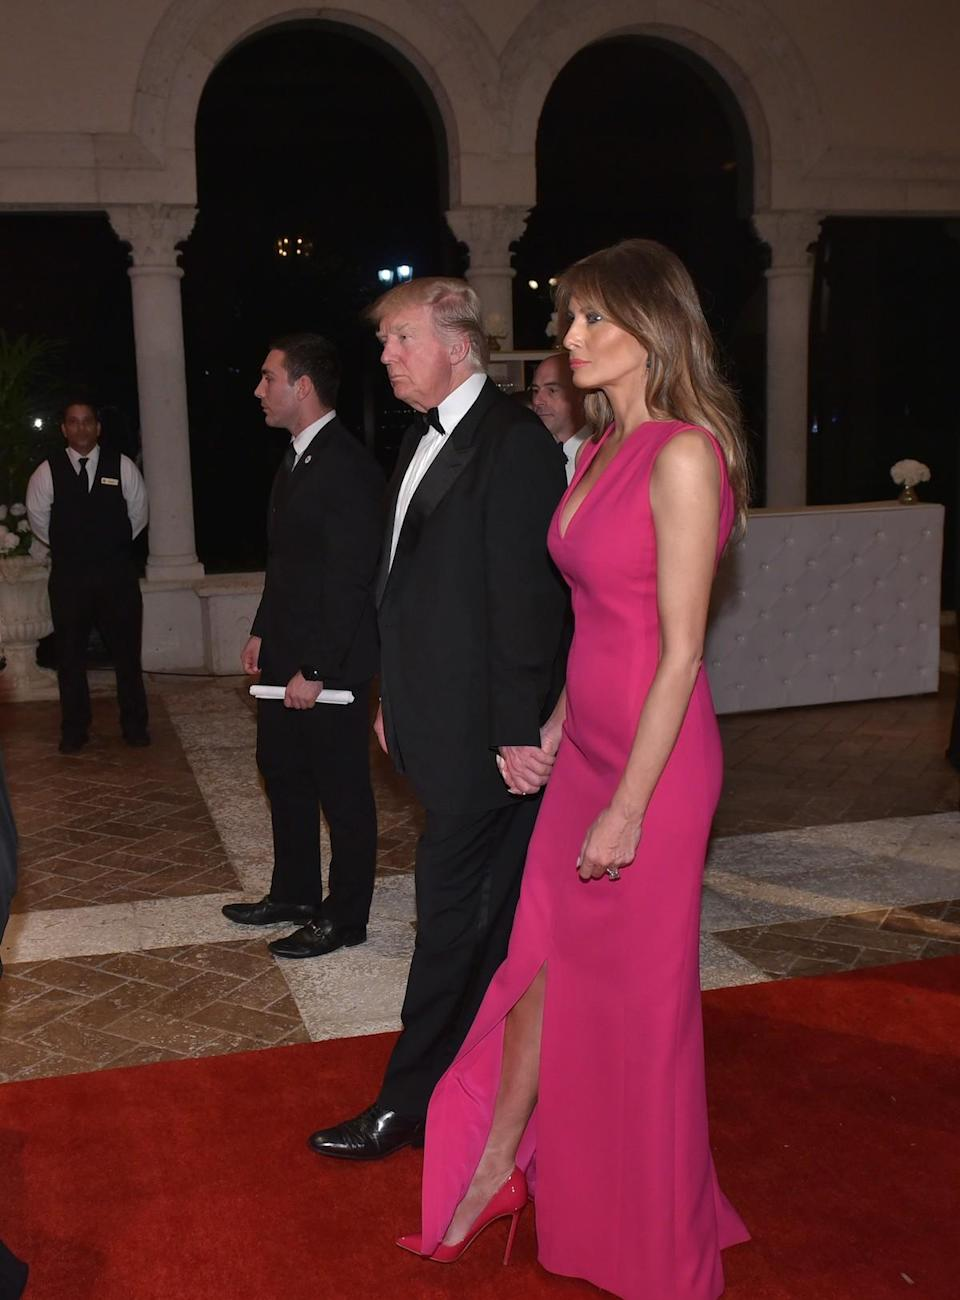 <p>For her first black tie gala since Inauguration Day, Melania Trump stepped out in a <span>hot-pink gown</span> from French fashion house Dior. To attend the 60th annual Red Cross Gala, the first lady paired the bright and tight dress with massive emerald and diamond earrings. (Photo: Getty Images) </p>